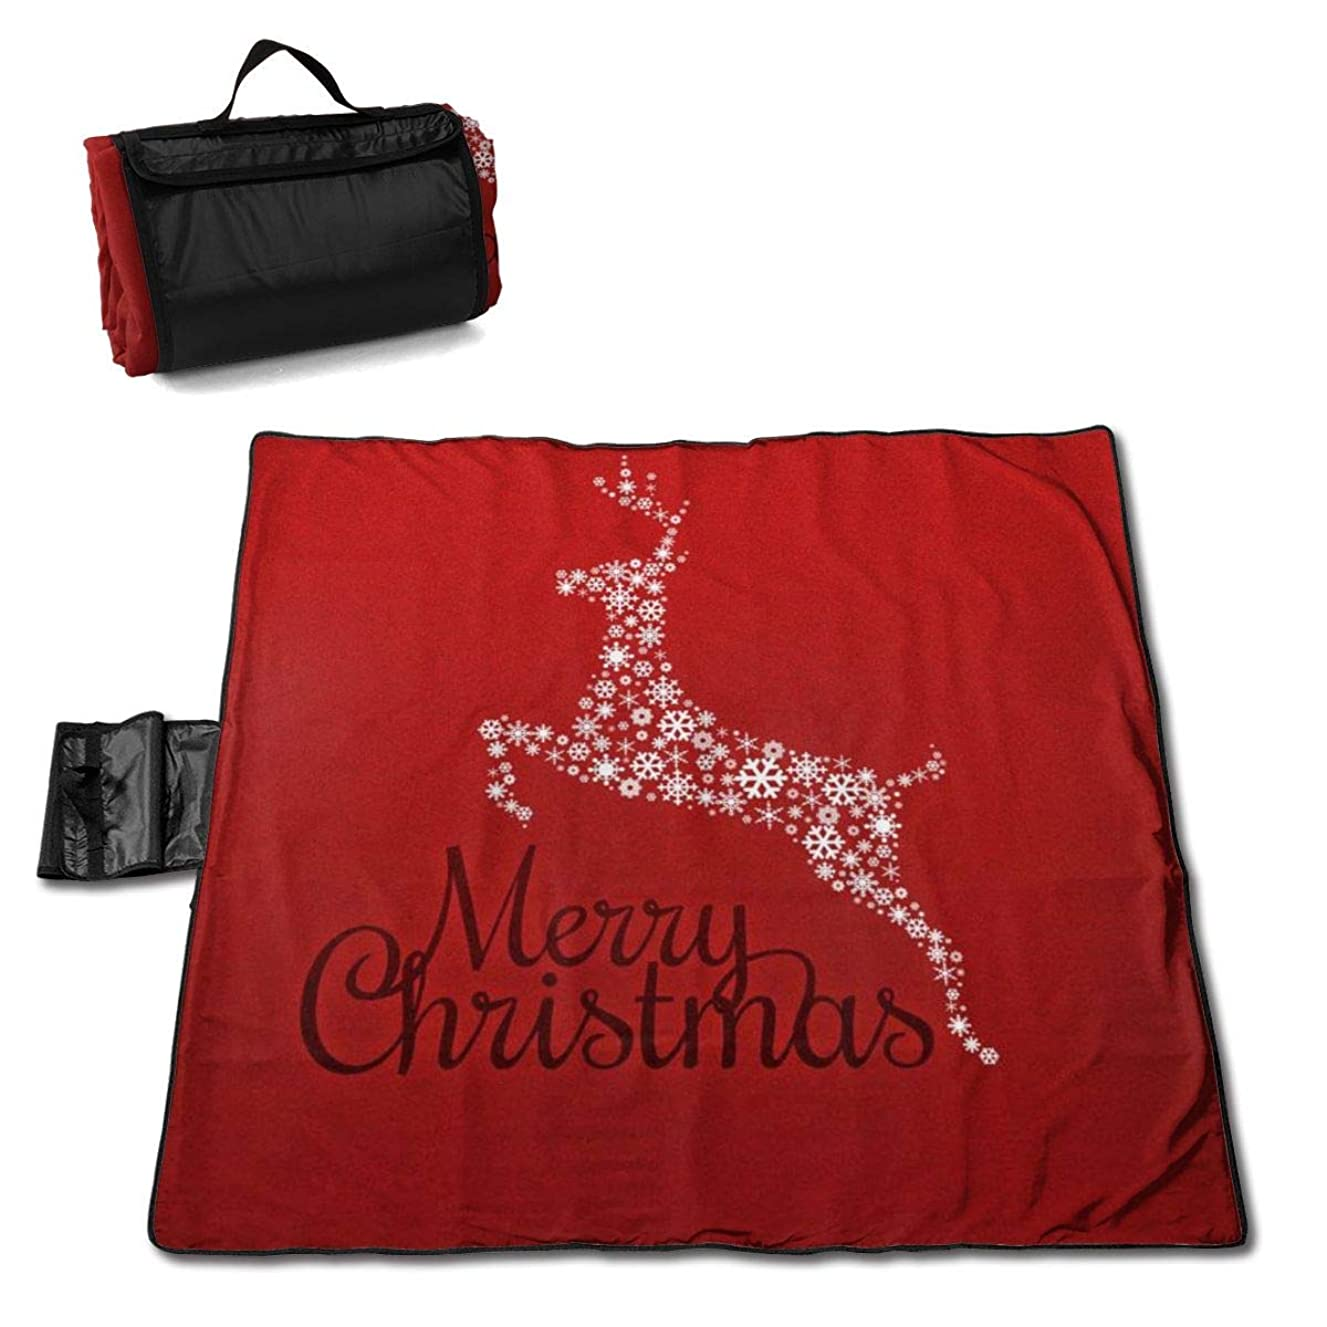 Beach Picnic Blanket Merry Christmas Eve Deer Waterproof Extra Large Outdoor Handy Mat Sand Free Camping Travelling Accessories Portable Family Tote On Lawn Outings Quick Dry Bag